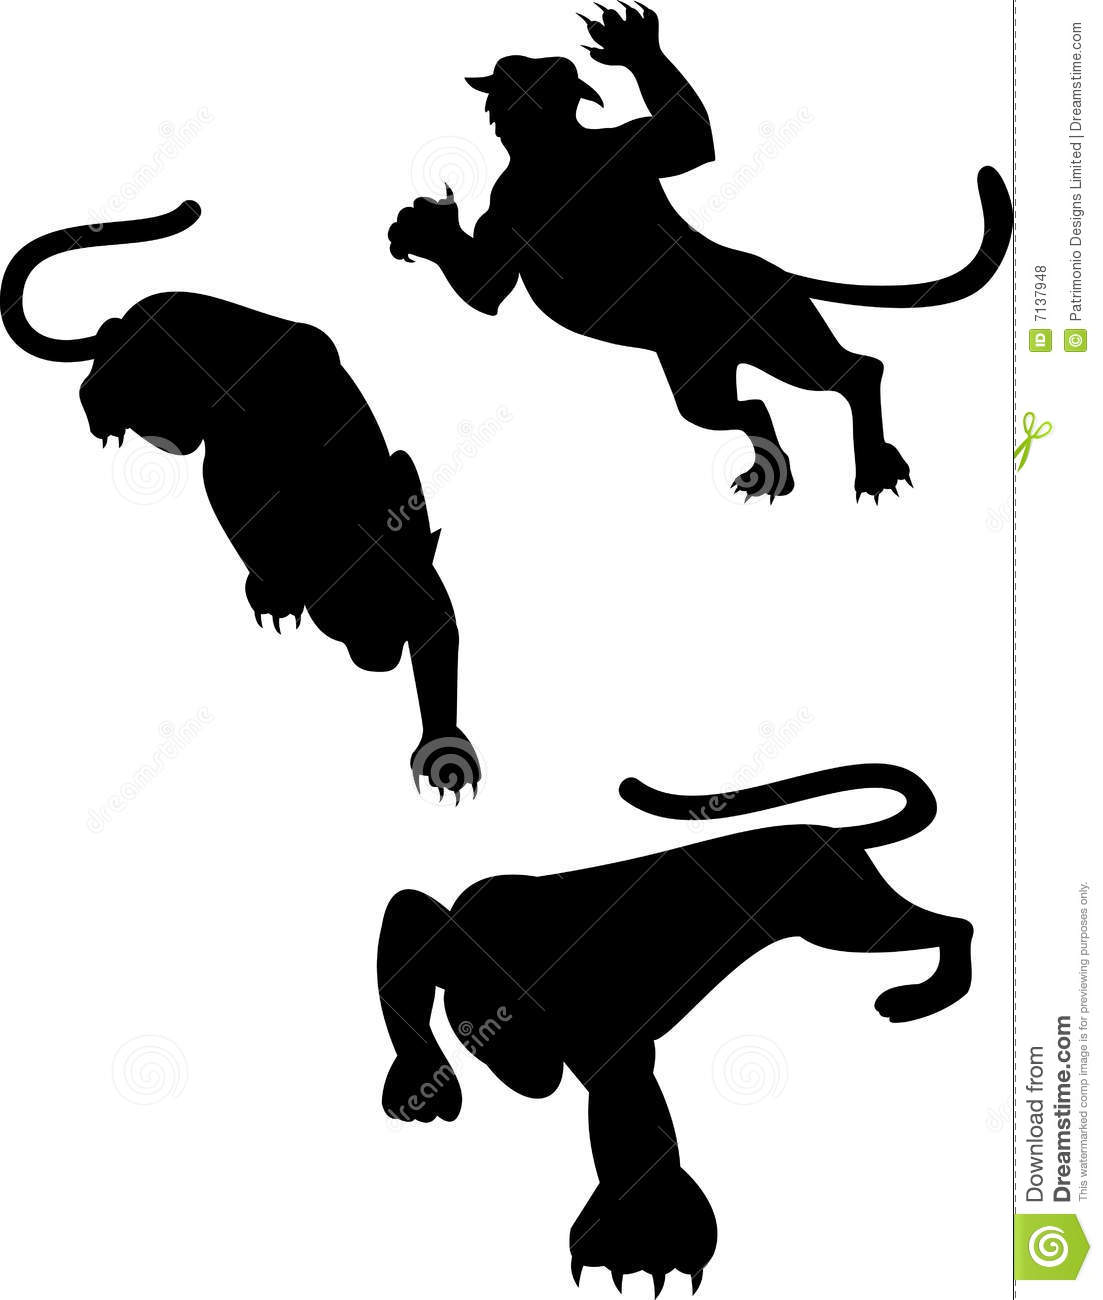 Big Cat Silhouettes Royalty Free Stock Photos Image 7137948